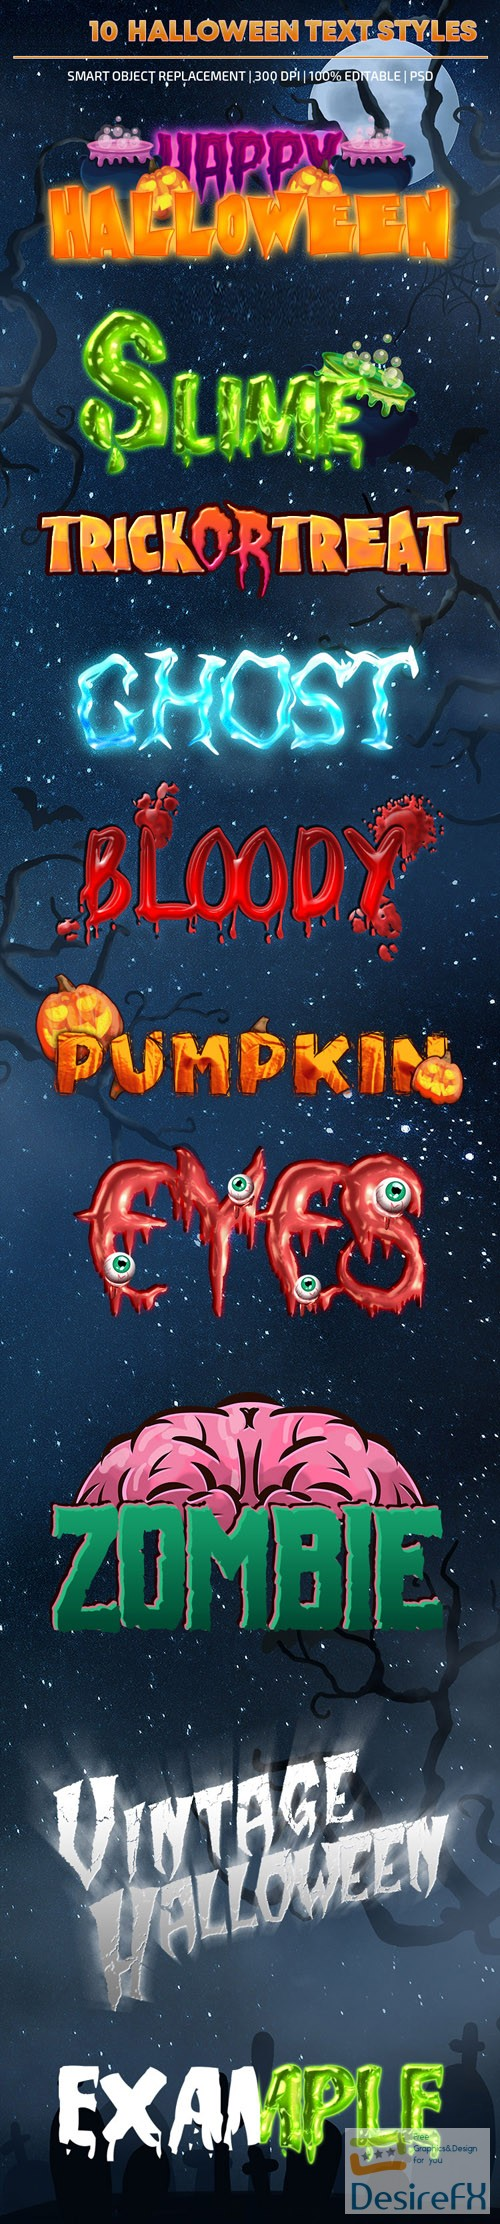 photoshop - 10 Halloween Text Styles for Photoshop